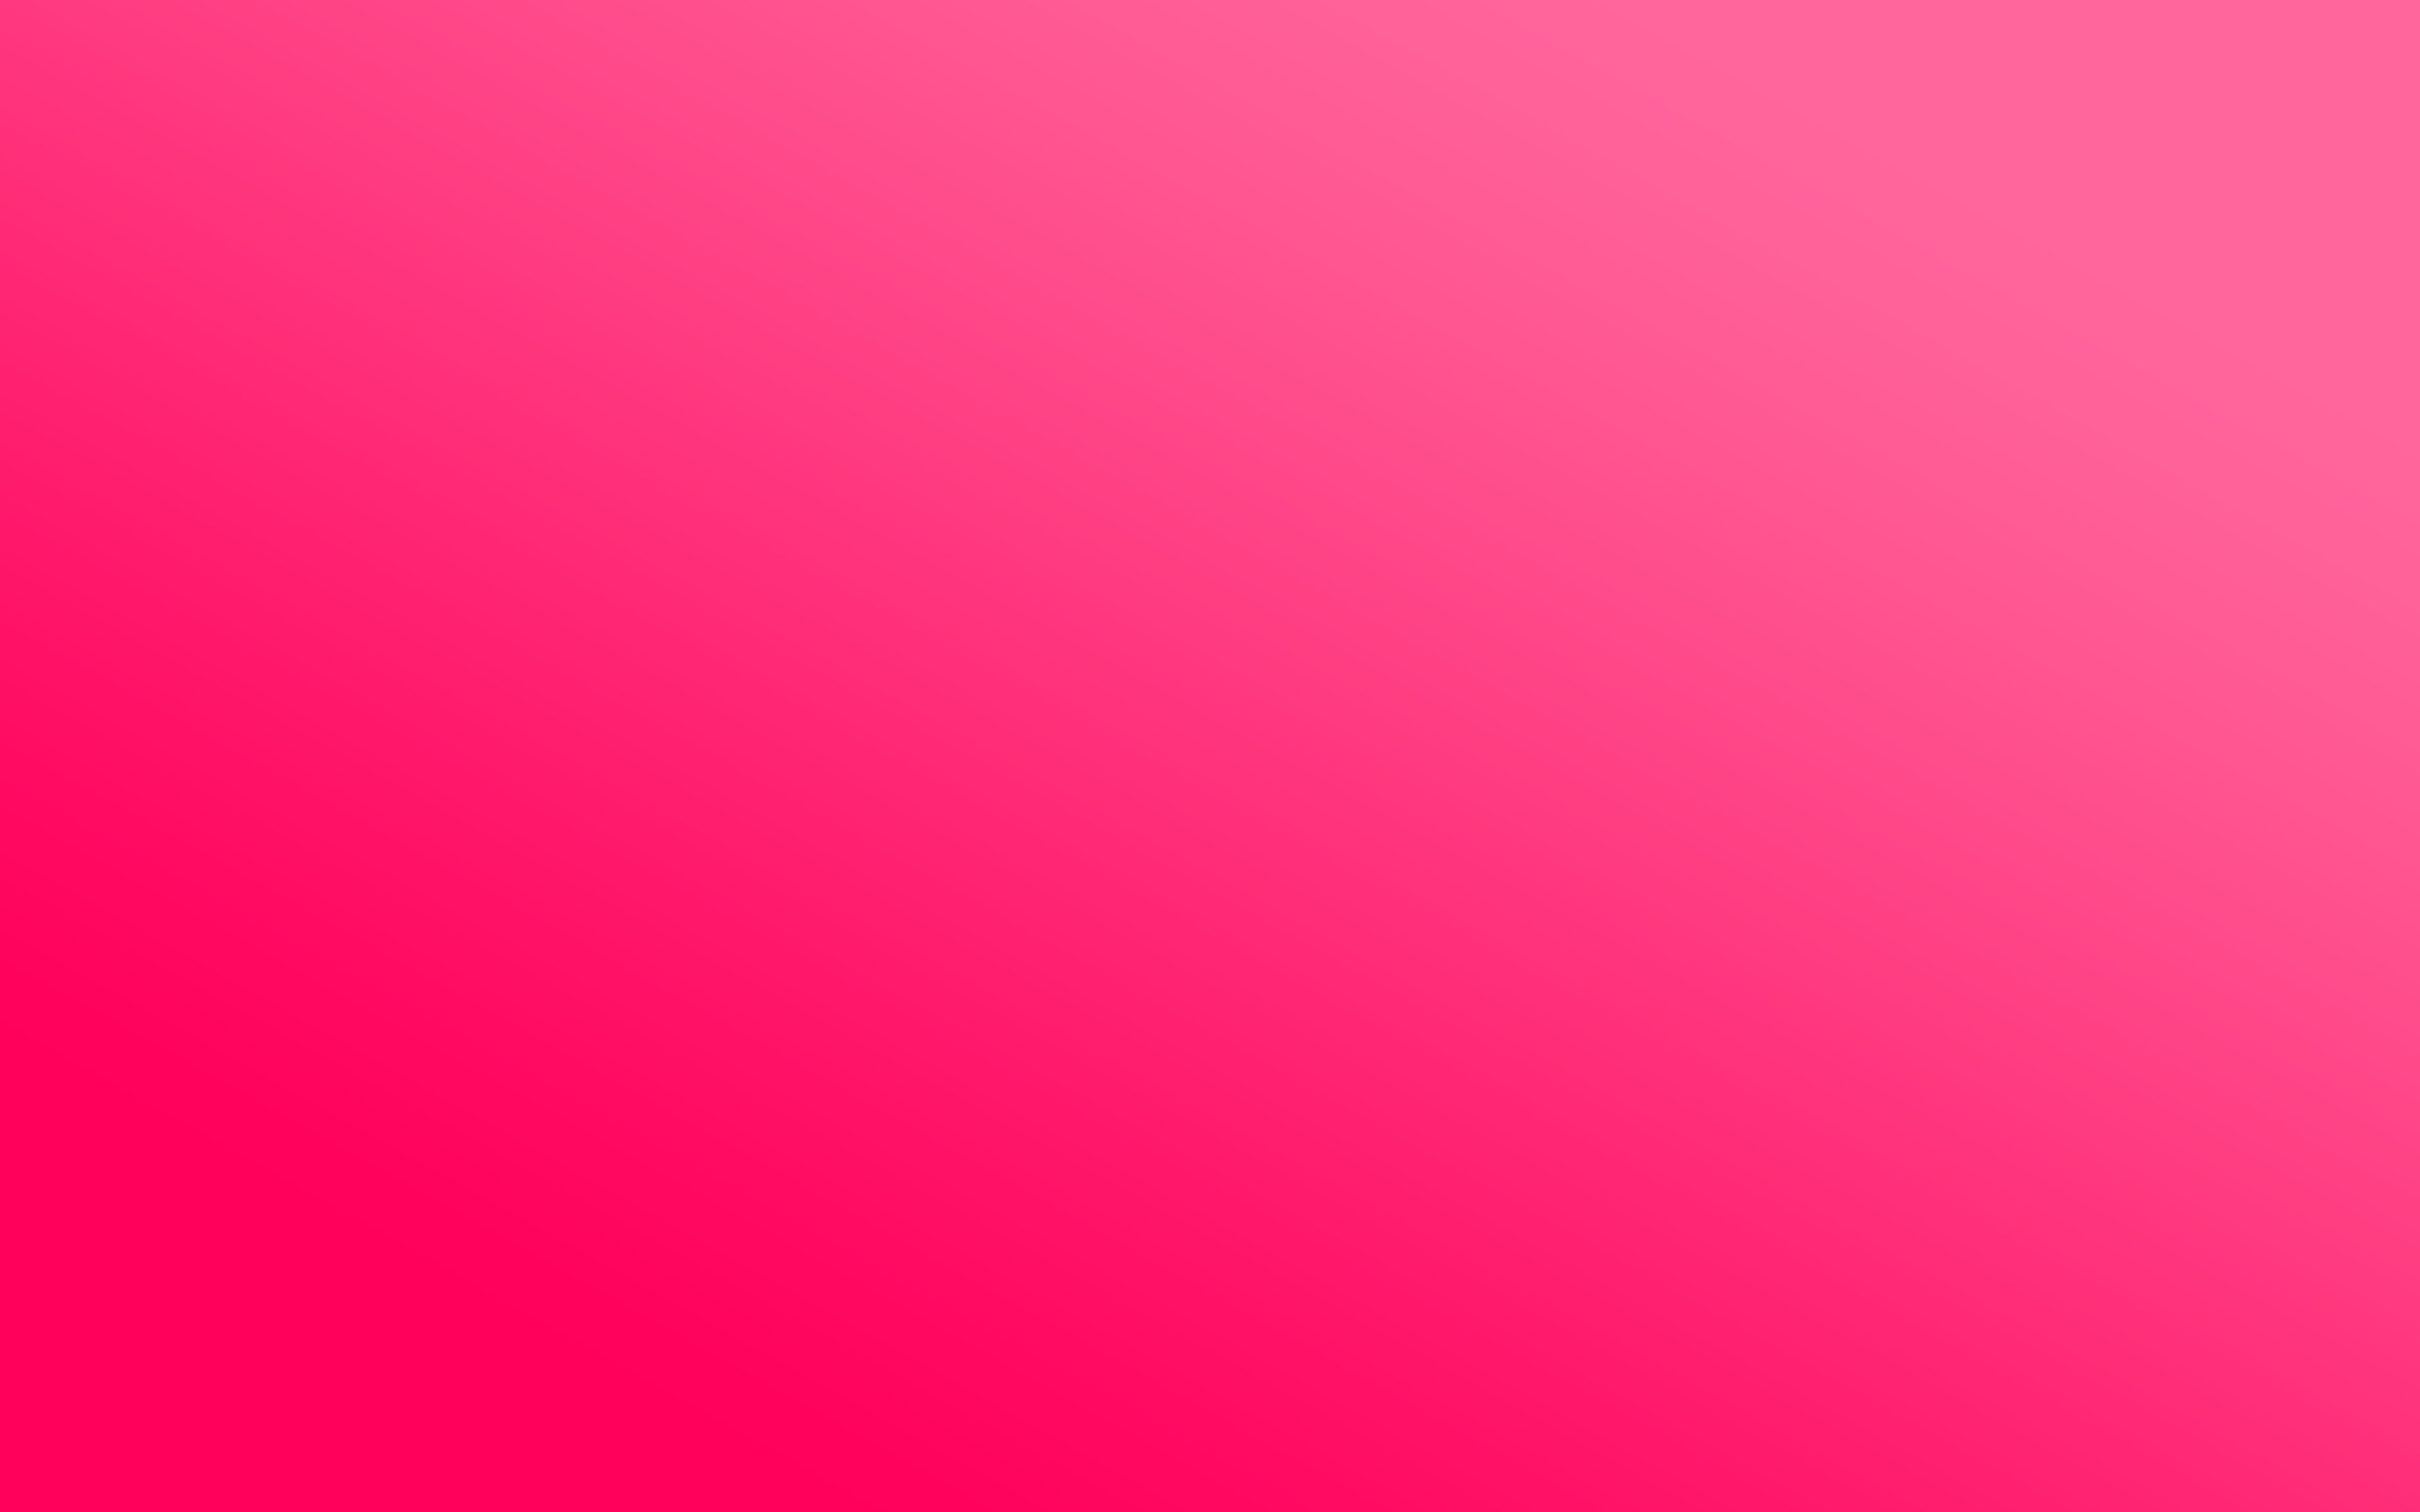 2560x1600 Pink Solid Color Wallpaper